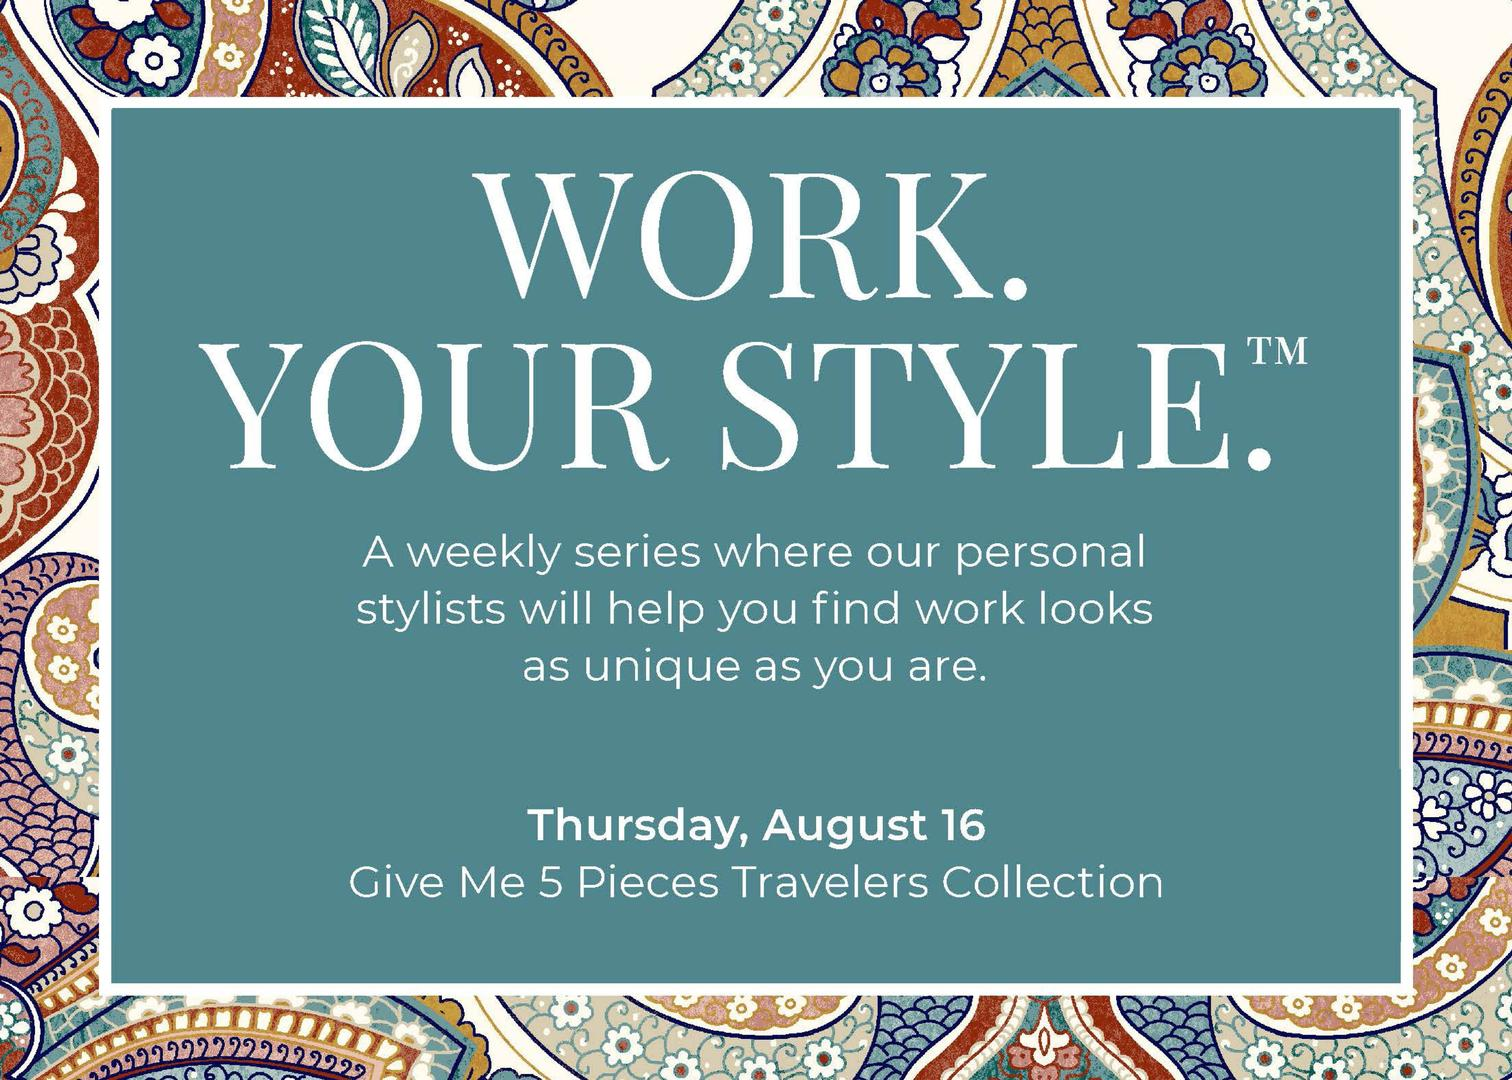 Paramus Park, Work You Style- Give Me 5 Pieces Travelers Collection  Event Image: 1073-B Paramus Park Mall, Paramus, NJ 07652, US